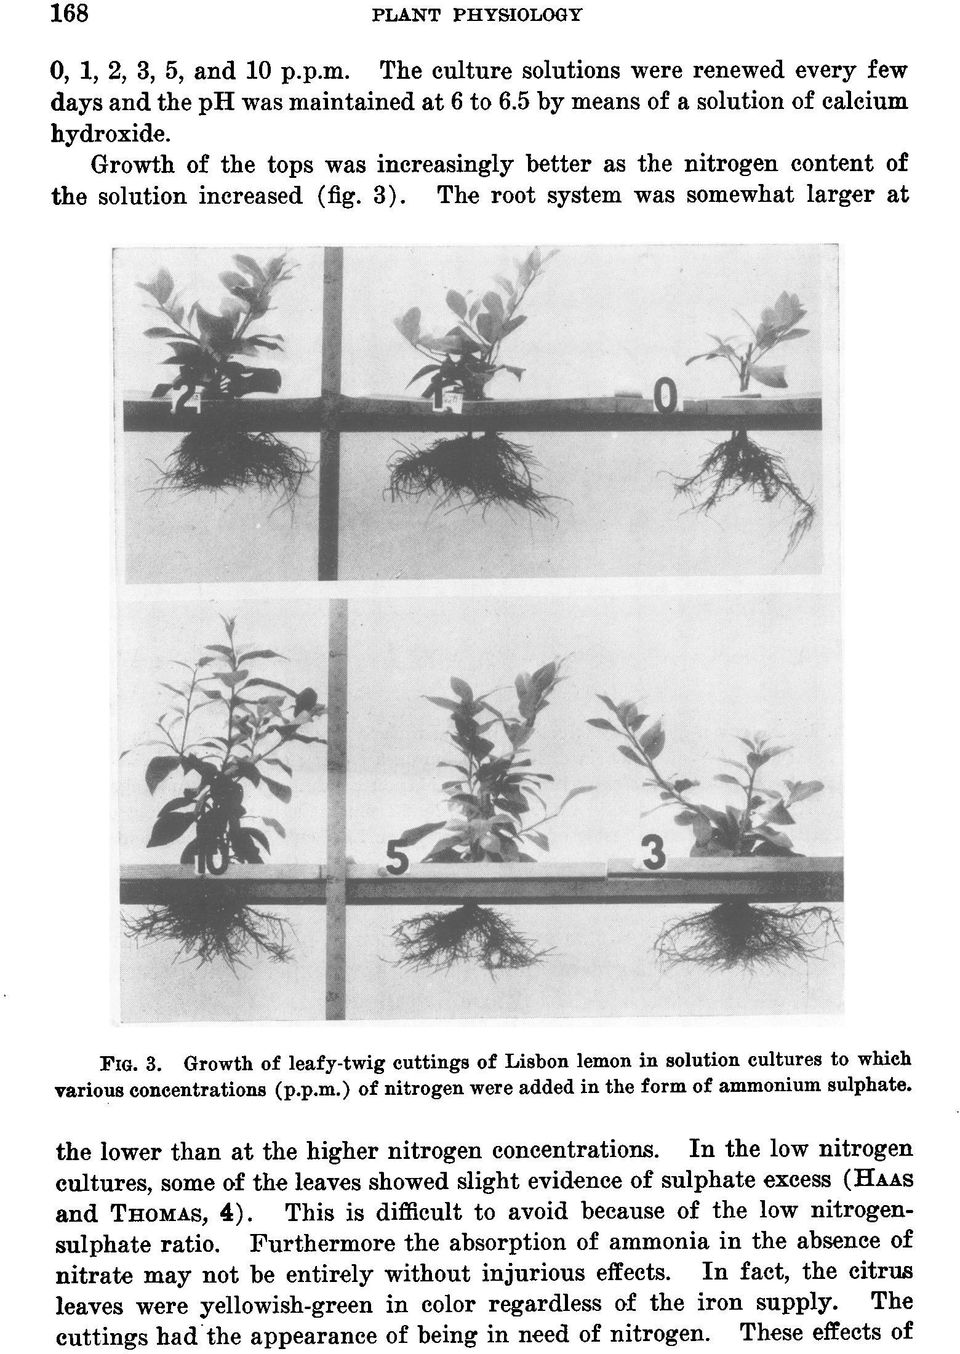 . The root system was somewhat larger at : v4. FIG. 3. Growth of leafy-twig cuttings of Lisbon lemon in solution cultures to which various concentrations (p.p.m.) of nitrogen were added in the form of ammonium sulphate.